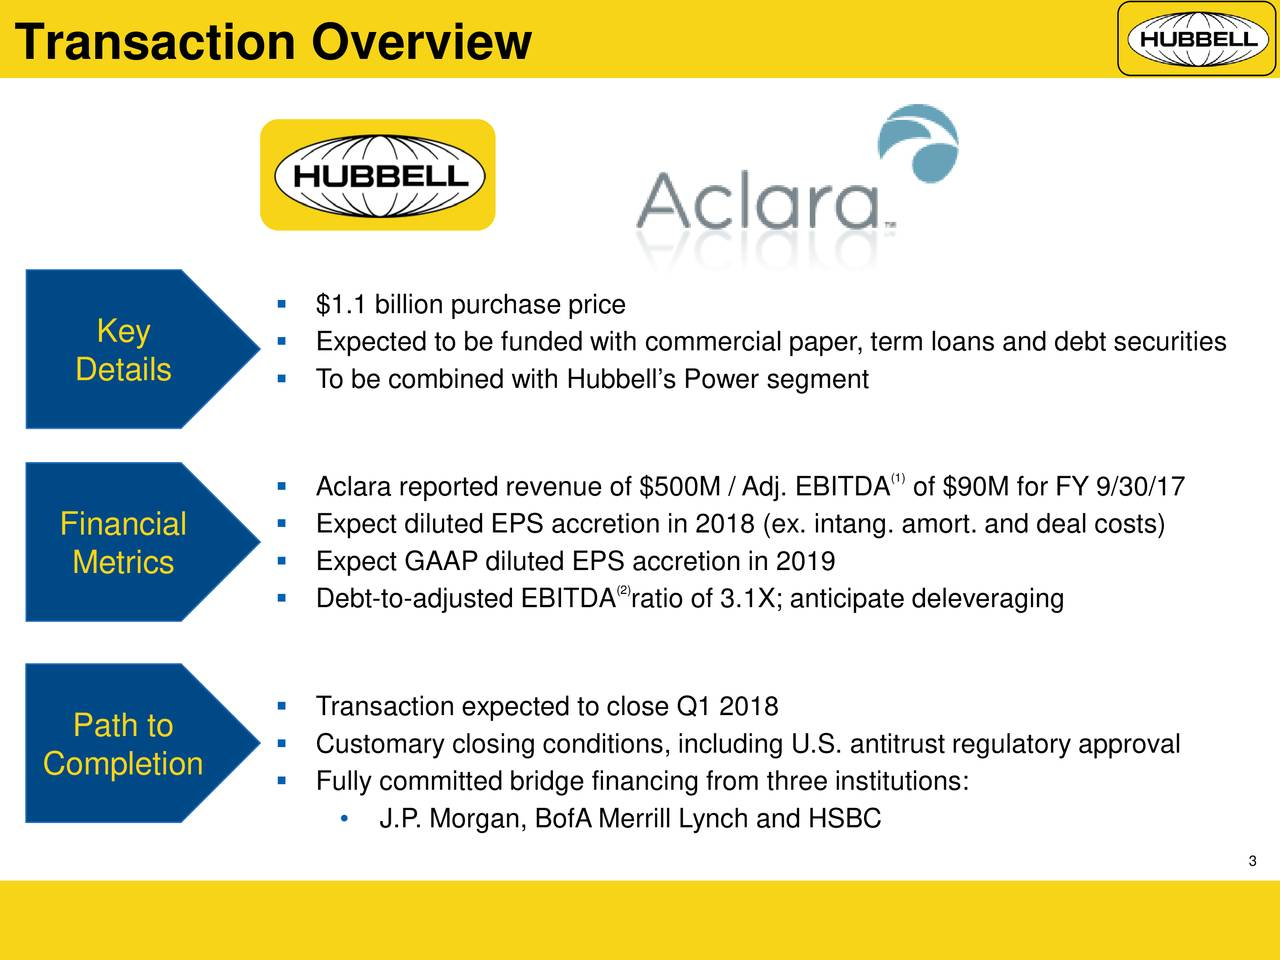  $1.1 billion purchase price Key  Expected to be funded with commercial paper, term loans and debt securities Details  To be combined with Hubbell's Power segment  Aclara reported revenue of $500M / Adj. EBITDA of $90M for FY 9/30/17 Financial  Expect diluted EPS accretion in 2018 (ex. intang. amort. and deal costs) Metrics  Expect GAAP diluted EPS accretion in 2019  Debt-to-adjusted EBITDA (2ratio of 3.1X; anticipate deleveraging  Transaction expected to close Q1 2018 Path to  Customary closing conditions, including U.S. antitrust regulatory approval Completion  Fully committed bridge financing from three institutions: • J.P. Morgan, BofA Merrill Lynch and HSBC 3